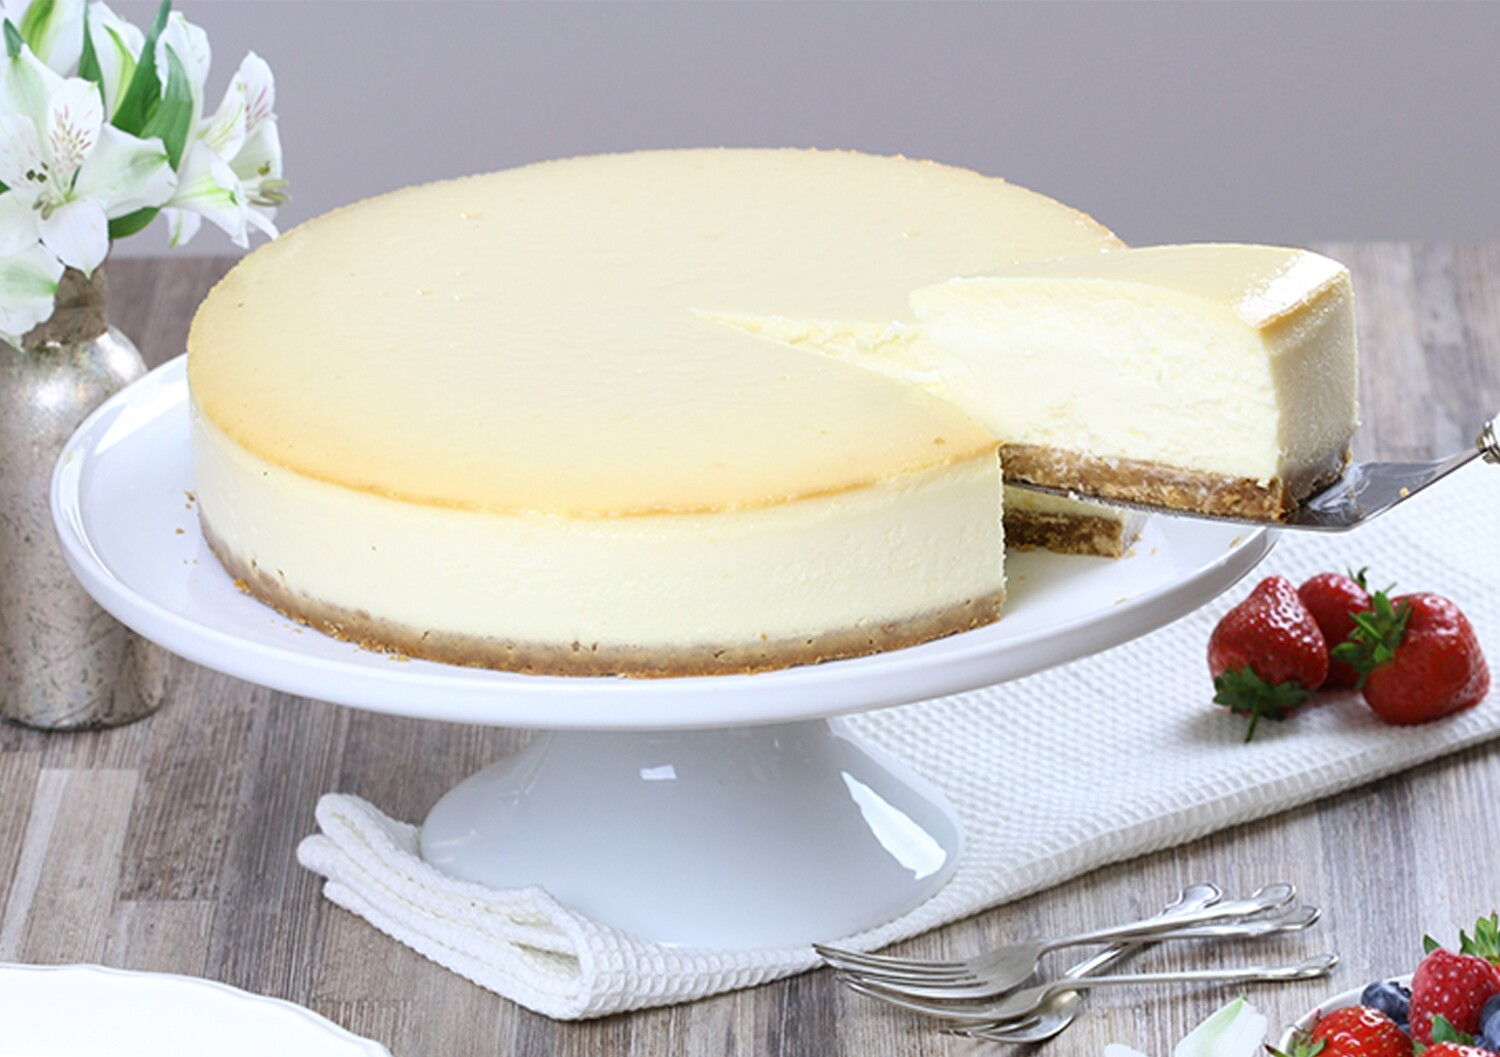 New York Style Big Baked Cheesecake (14 Slices)